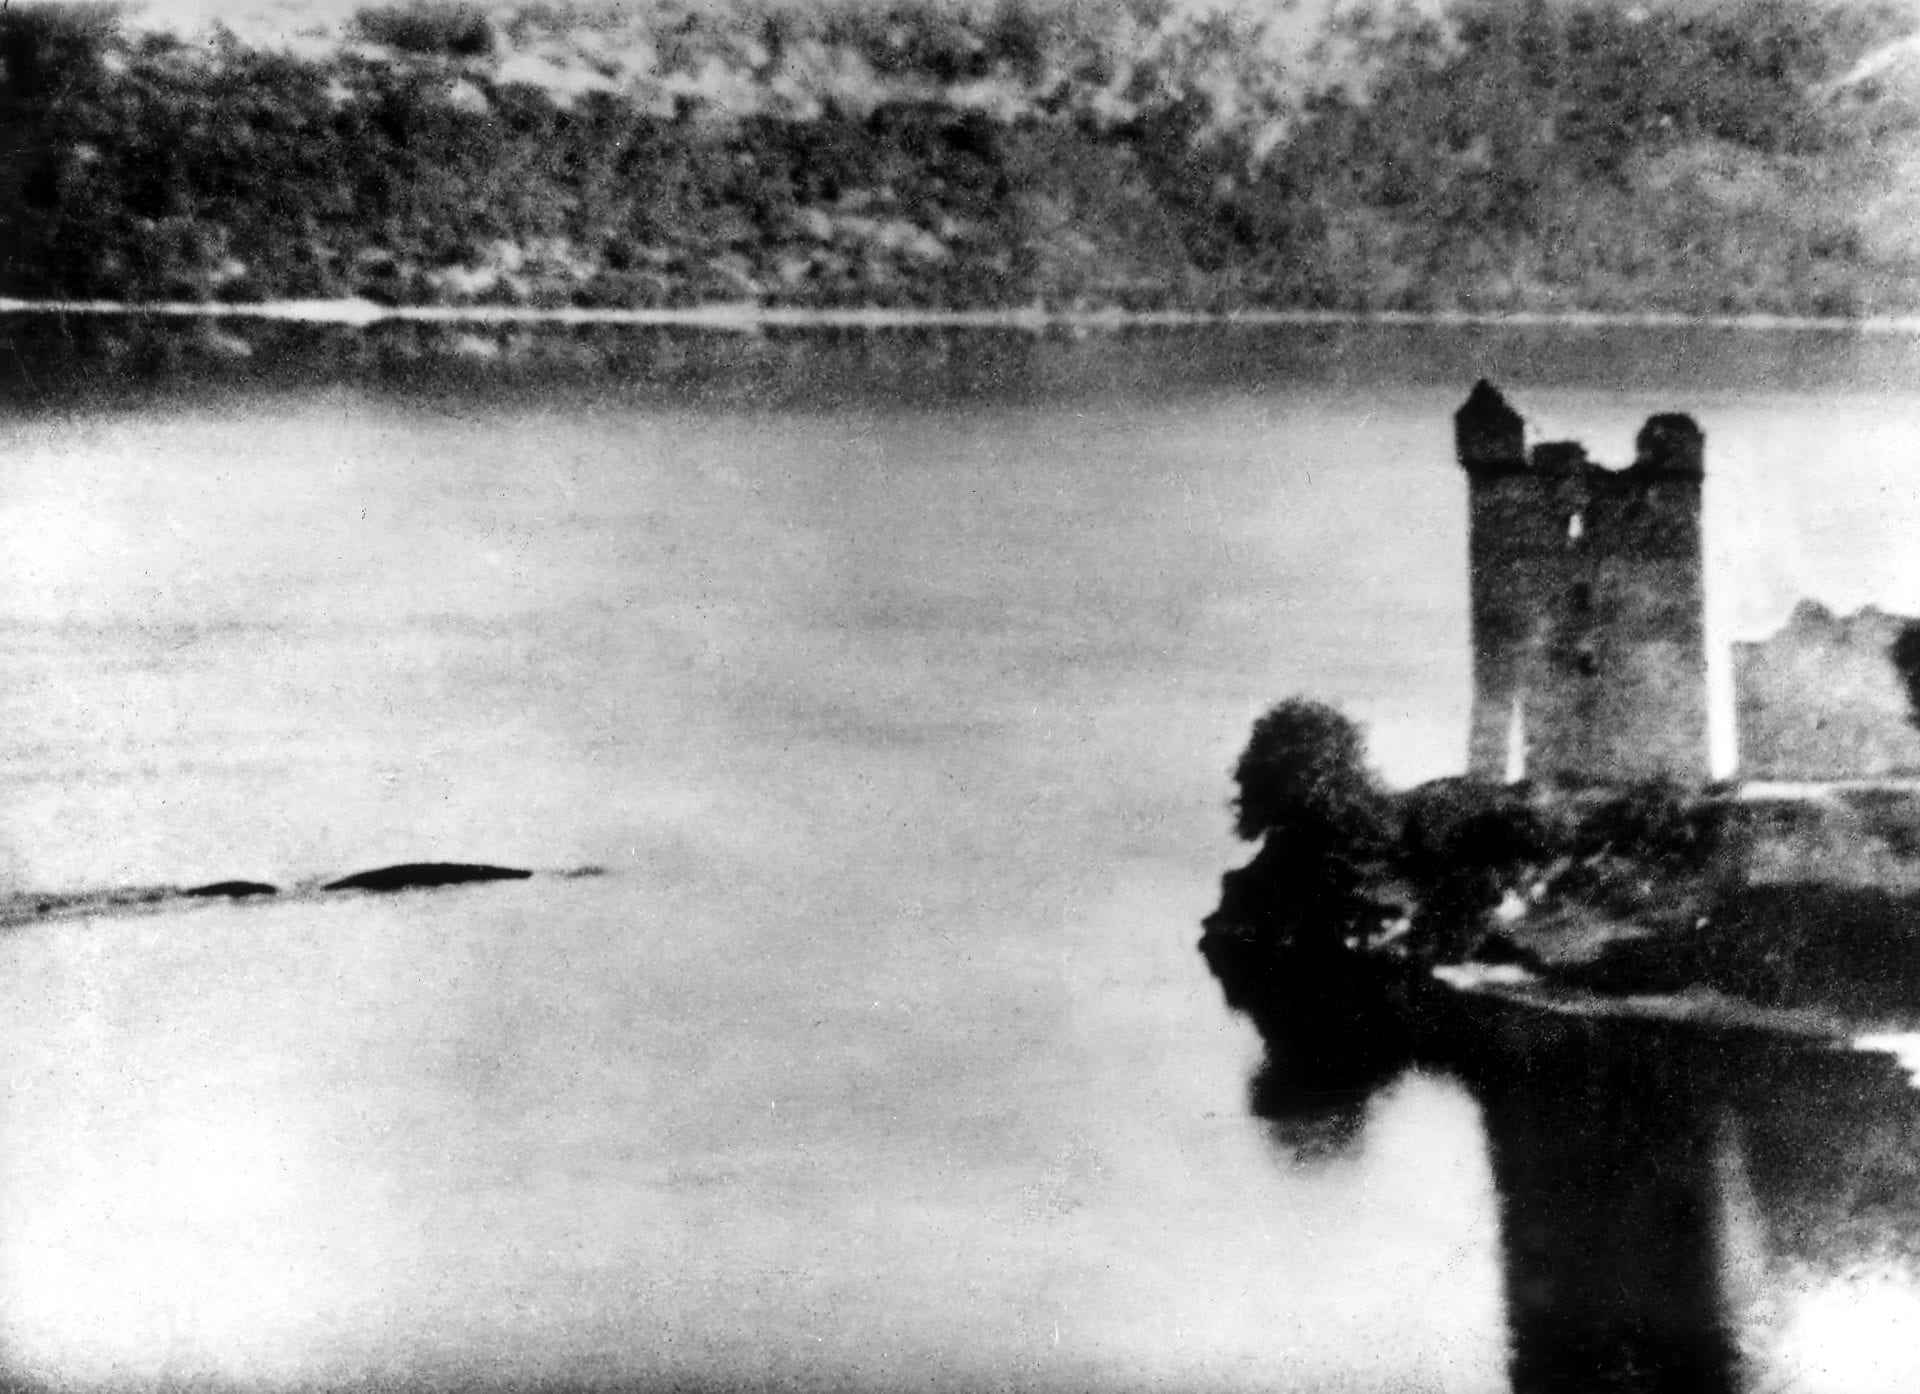 black and white image of Loch Ness and possibly the Loch Ness Monster